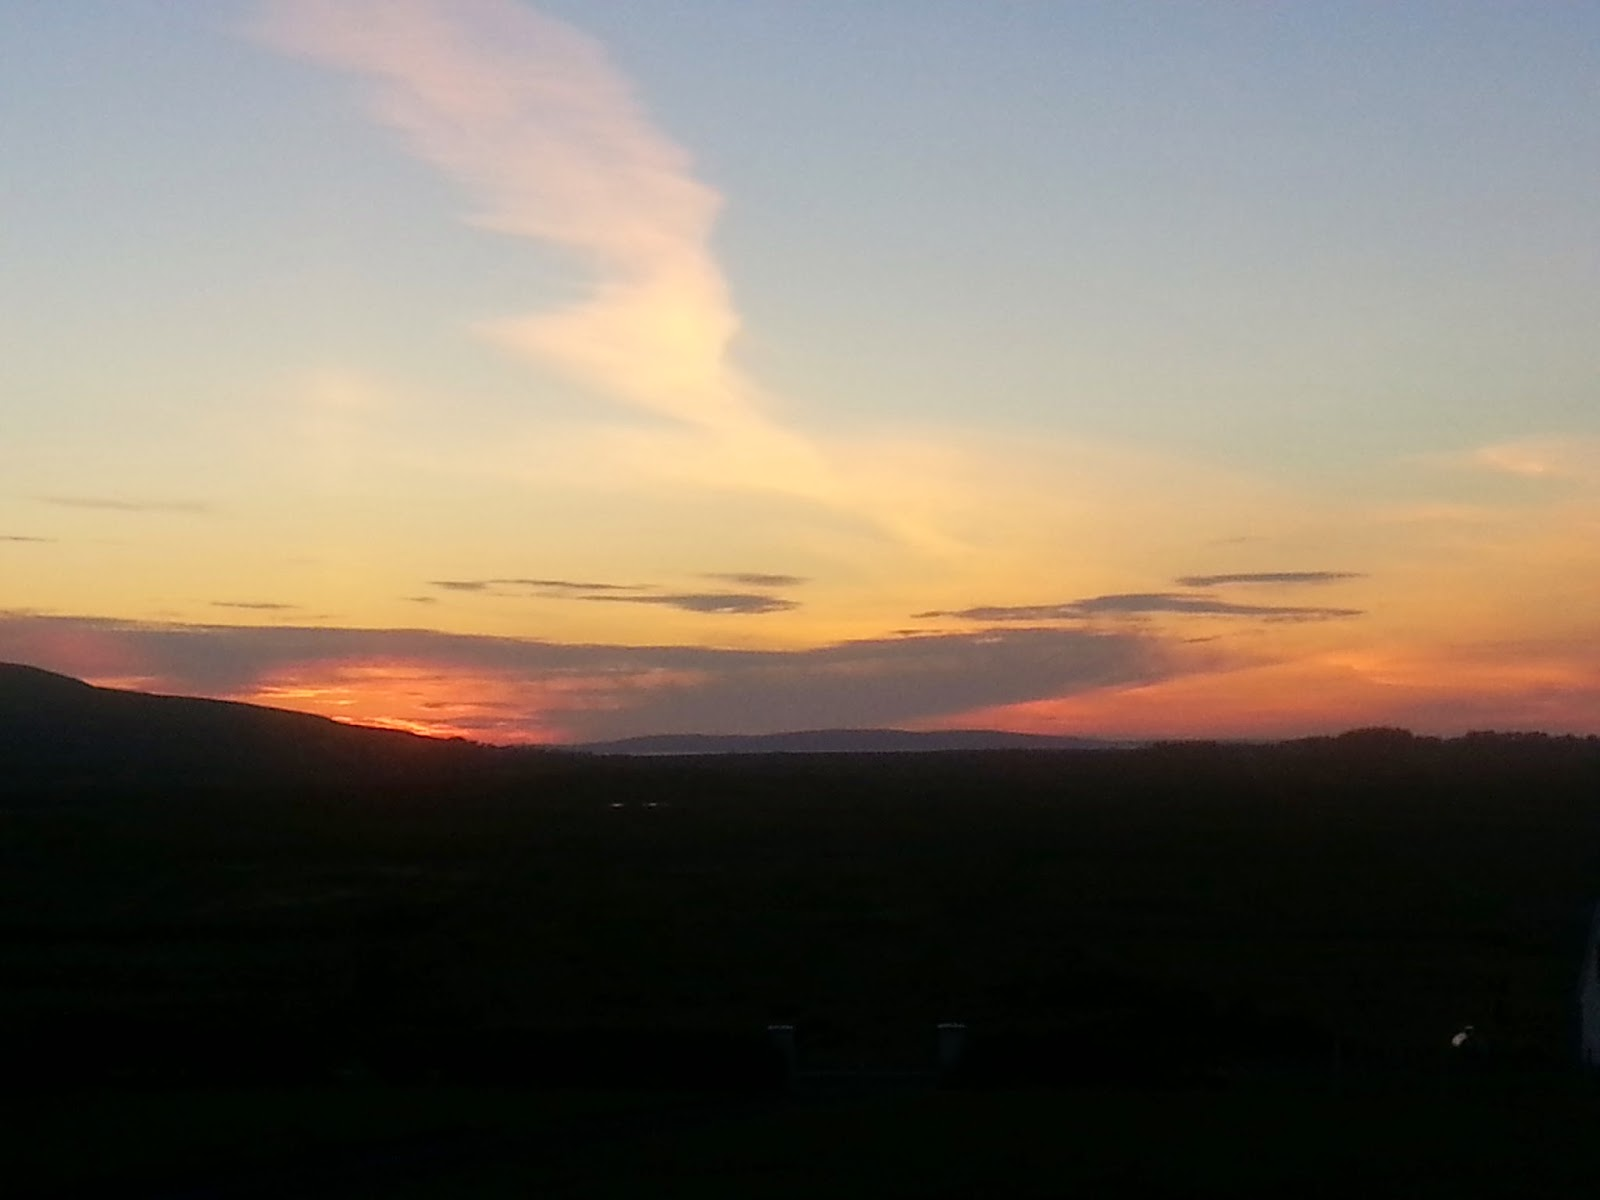 summer sunset on achill island, dark in the foreground, ornage, purple, pink and blue sky